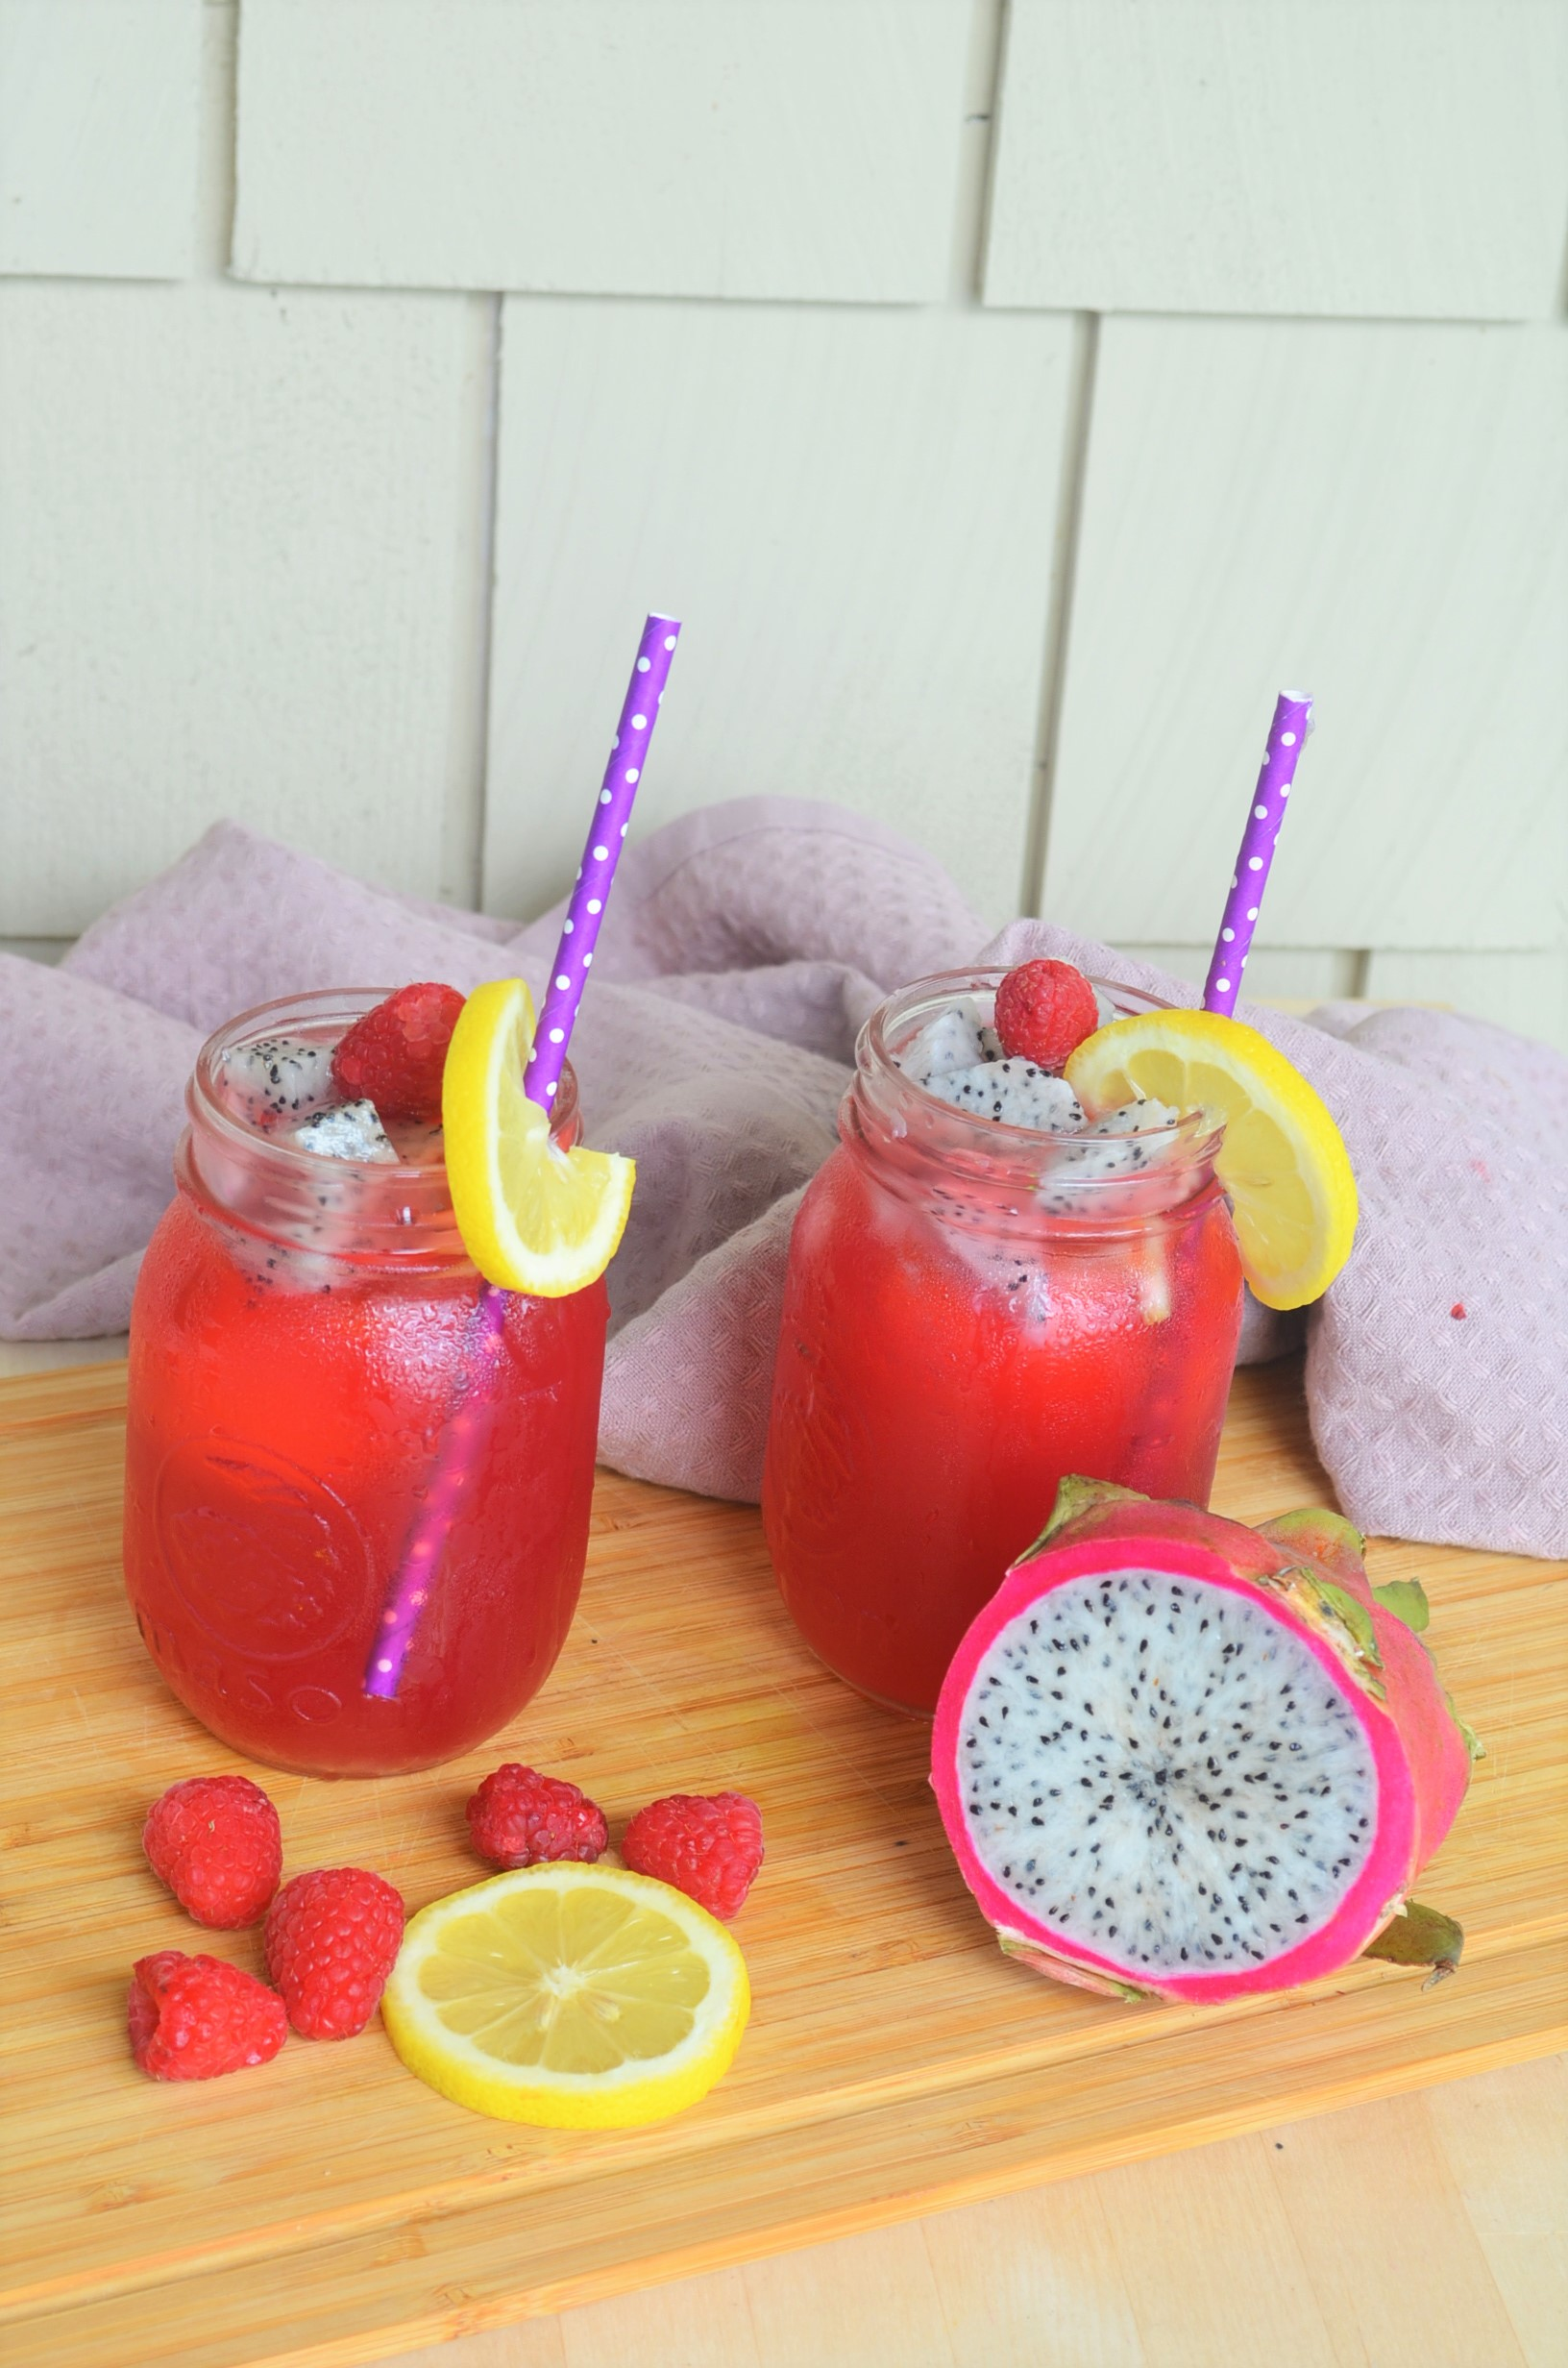 Raspberry and Dragon Fruit Shaken Ice Tea Lemonade